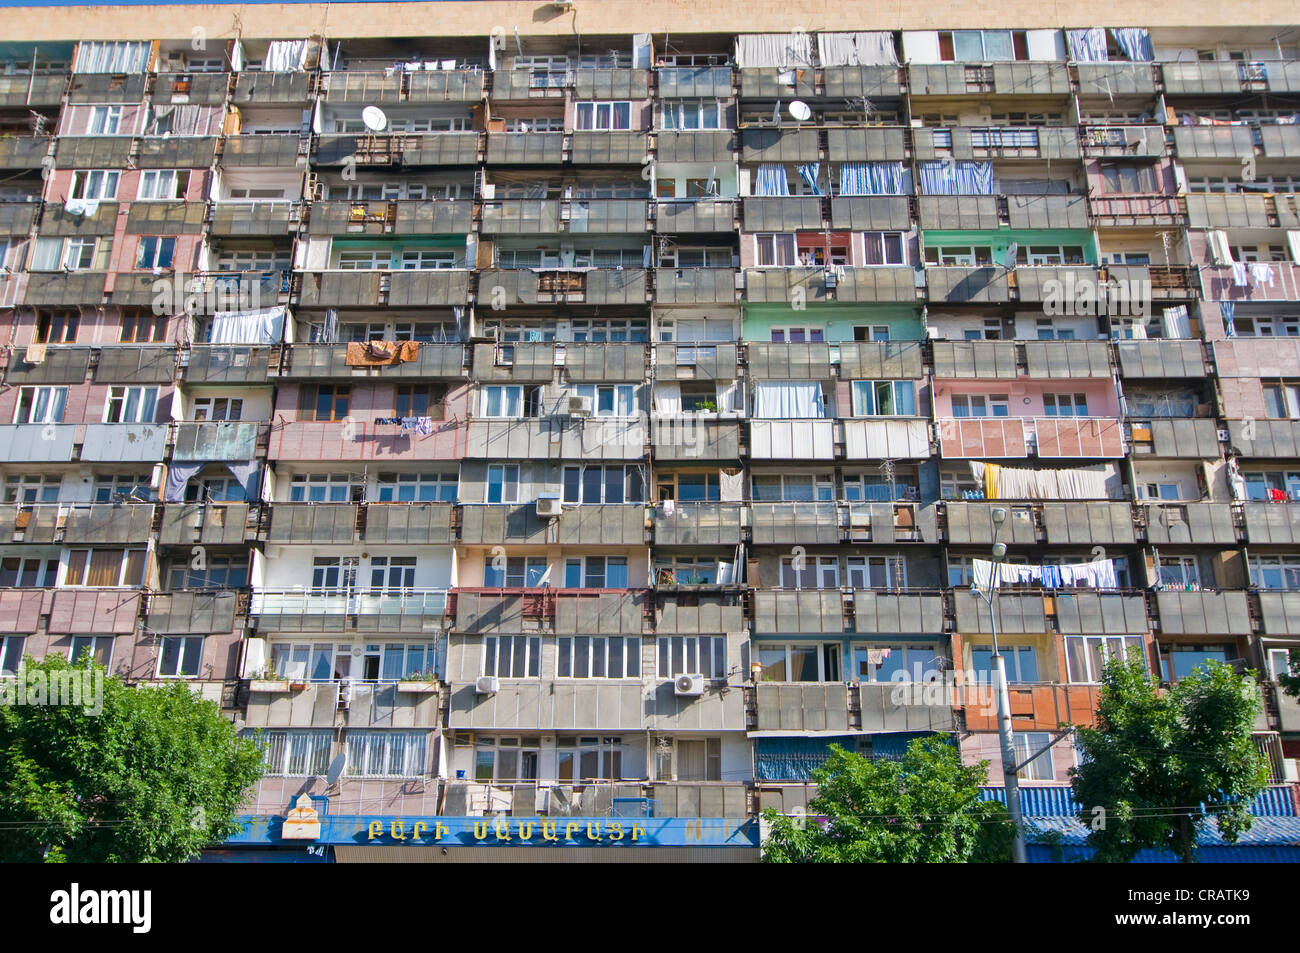 Facade of an apartment block with balconies, Yerevan, Armenia, Middle East - Stock Image